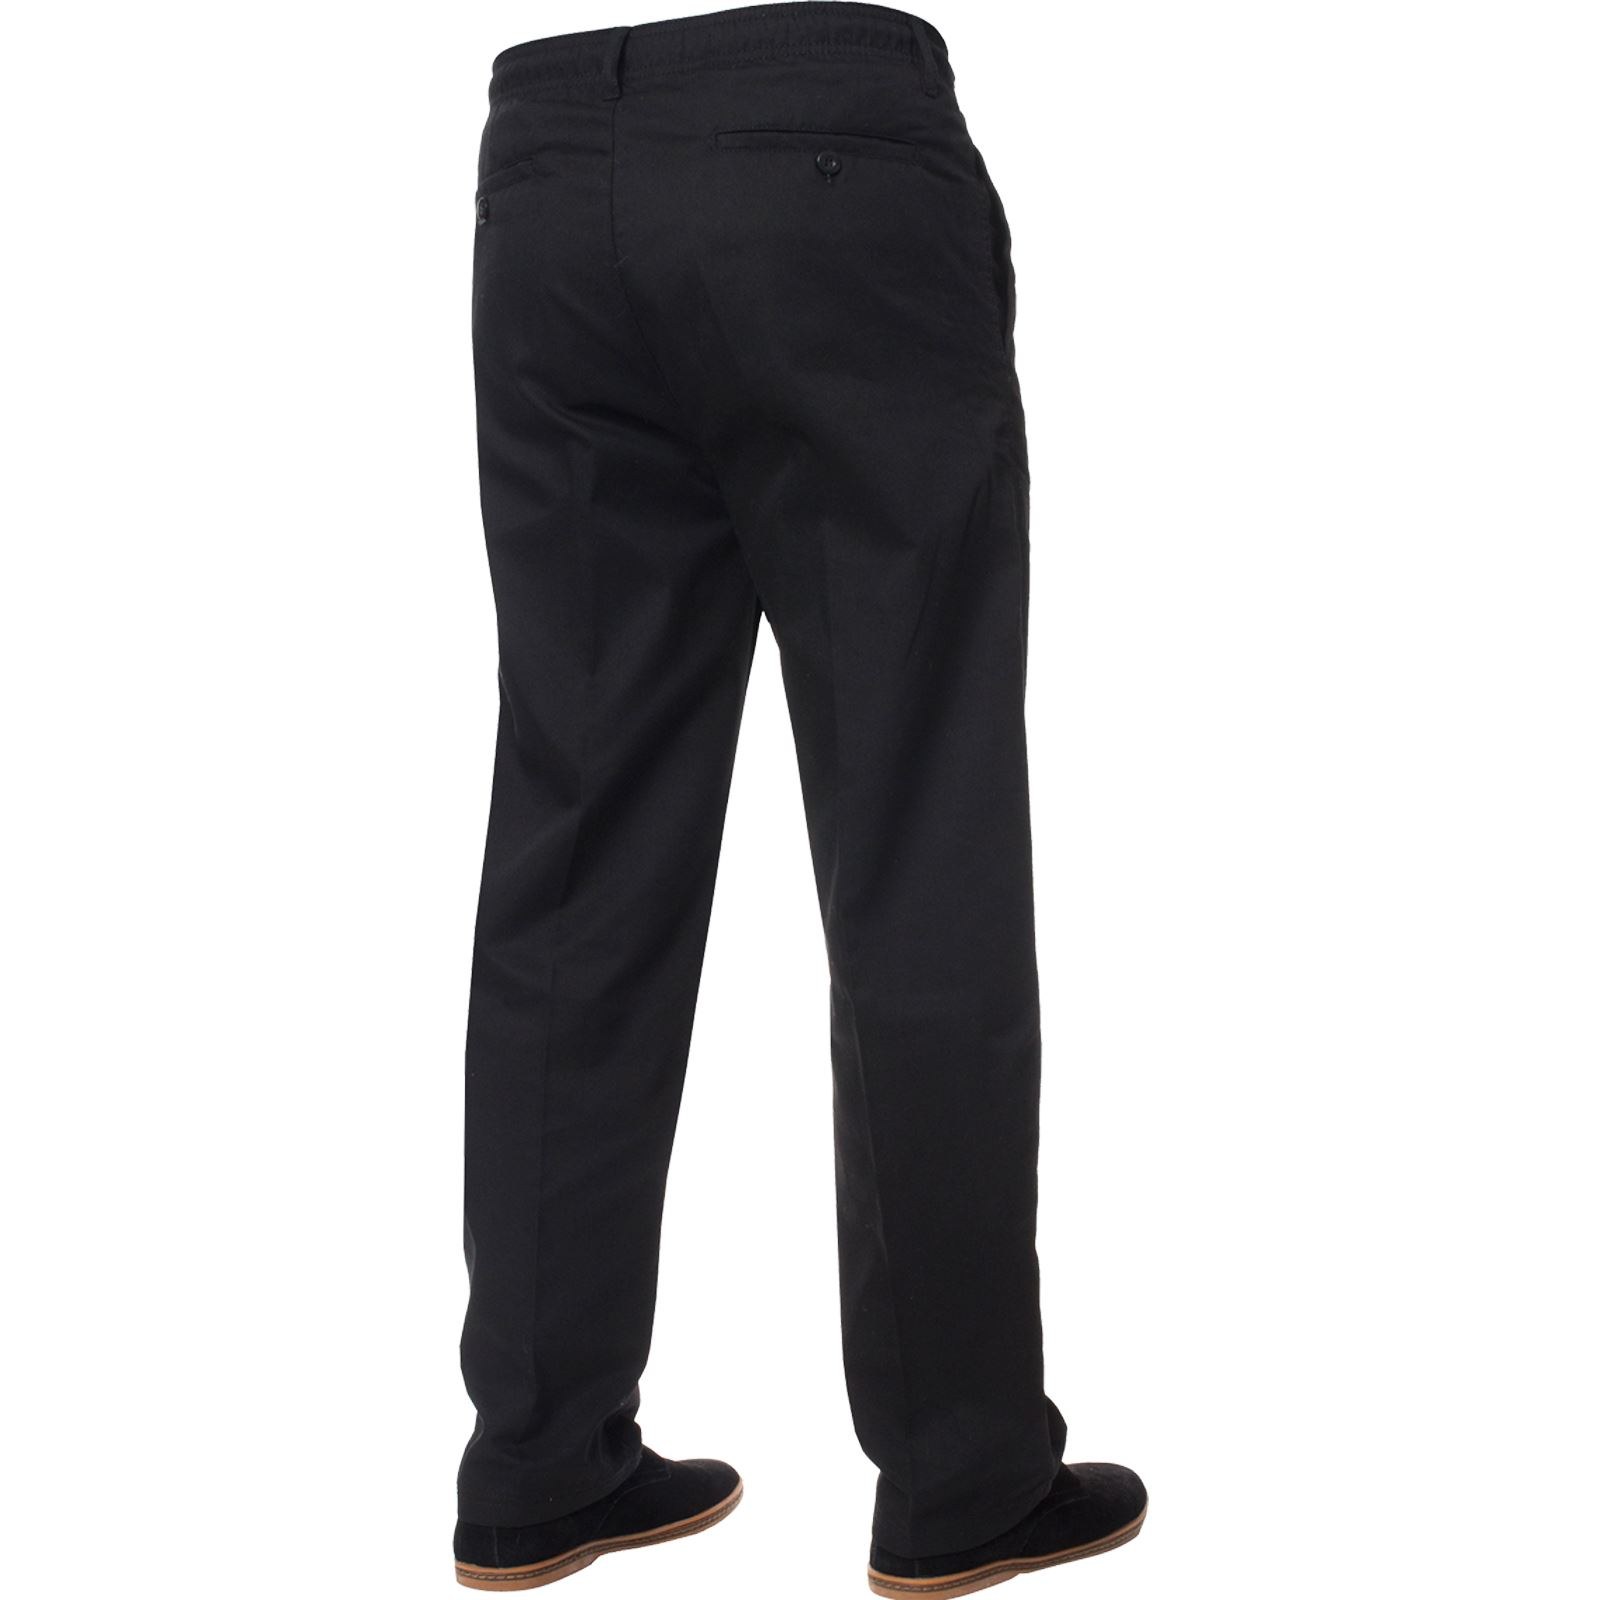 Mens-Rugby-Trousers-Kruze-Elasticated-Waist-Drawstring-Pants-Regular-King-Sizes thumbnail 6